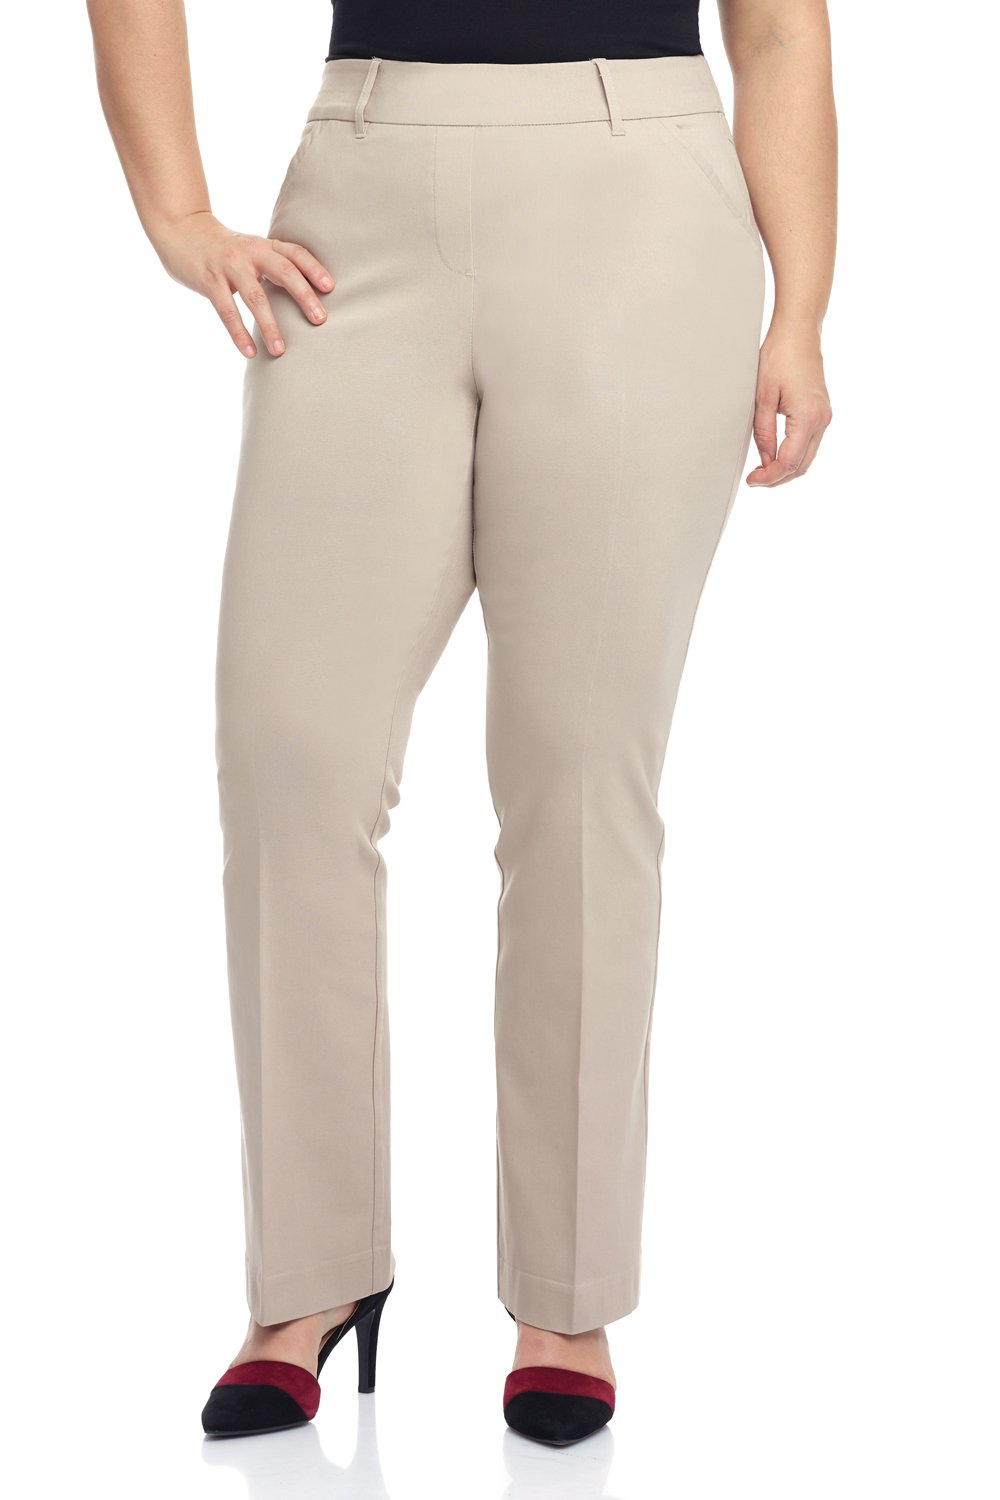 Rekucci Curvy Woman Ease In To Comfort Fit Barely Bootcut Plus Size Pant (18W,Stone)